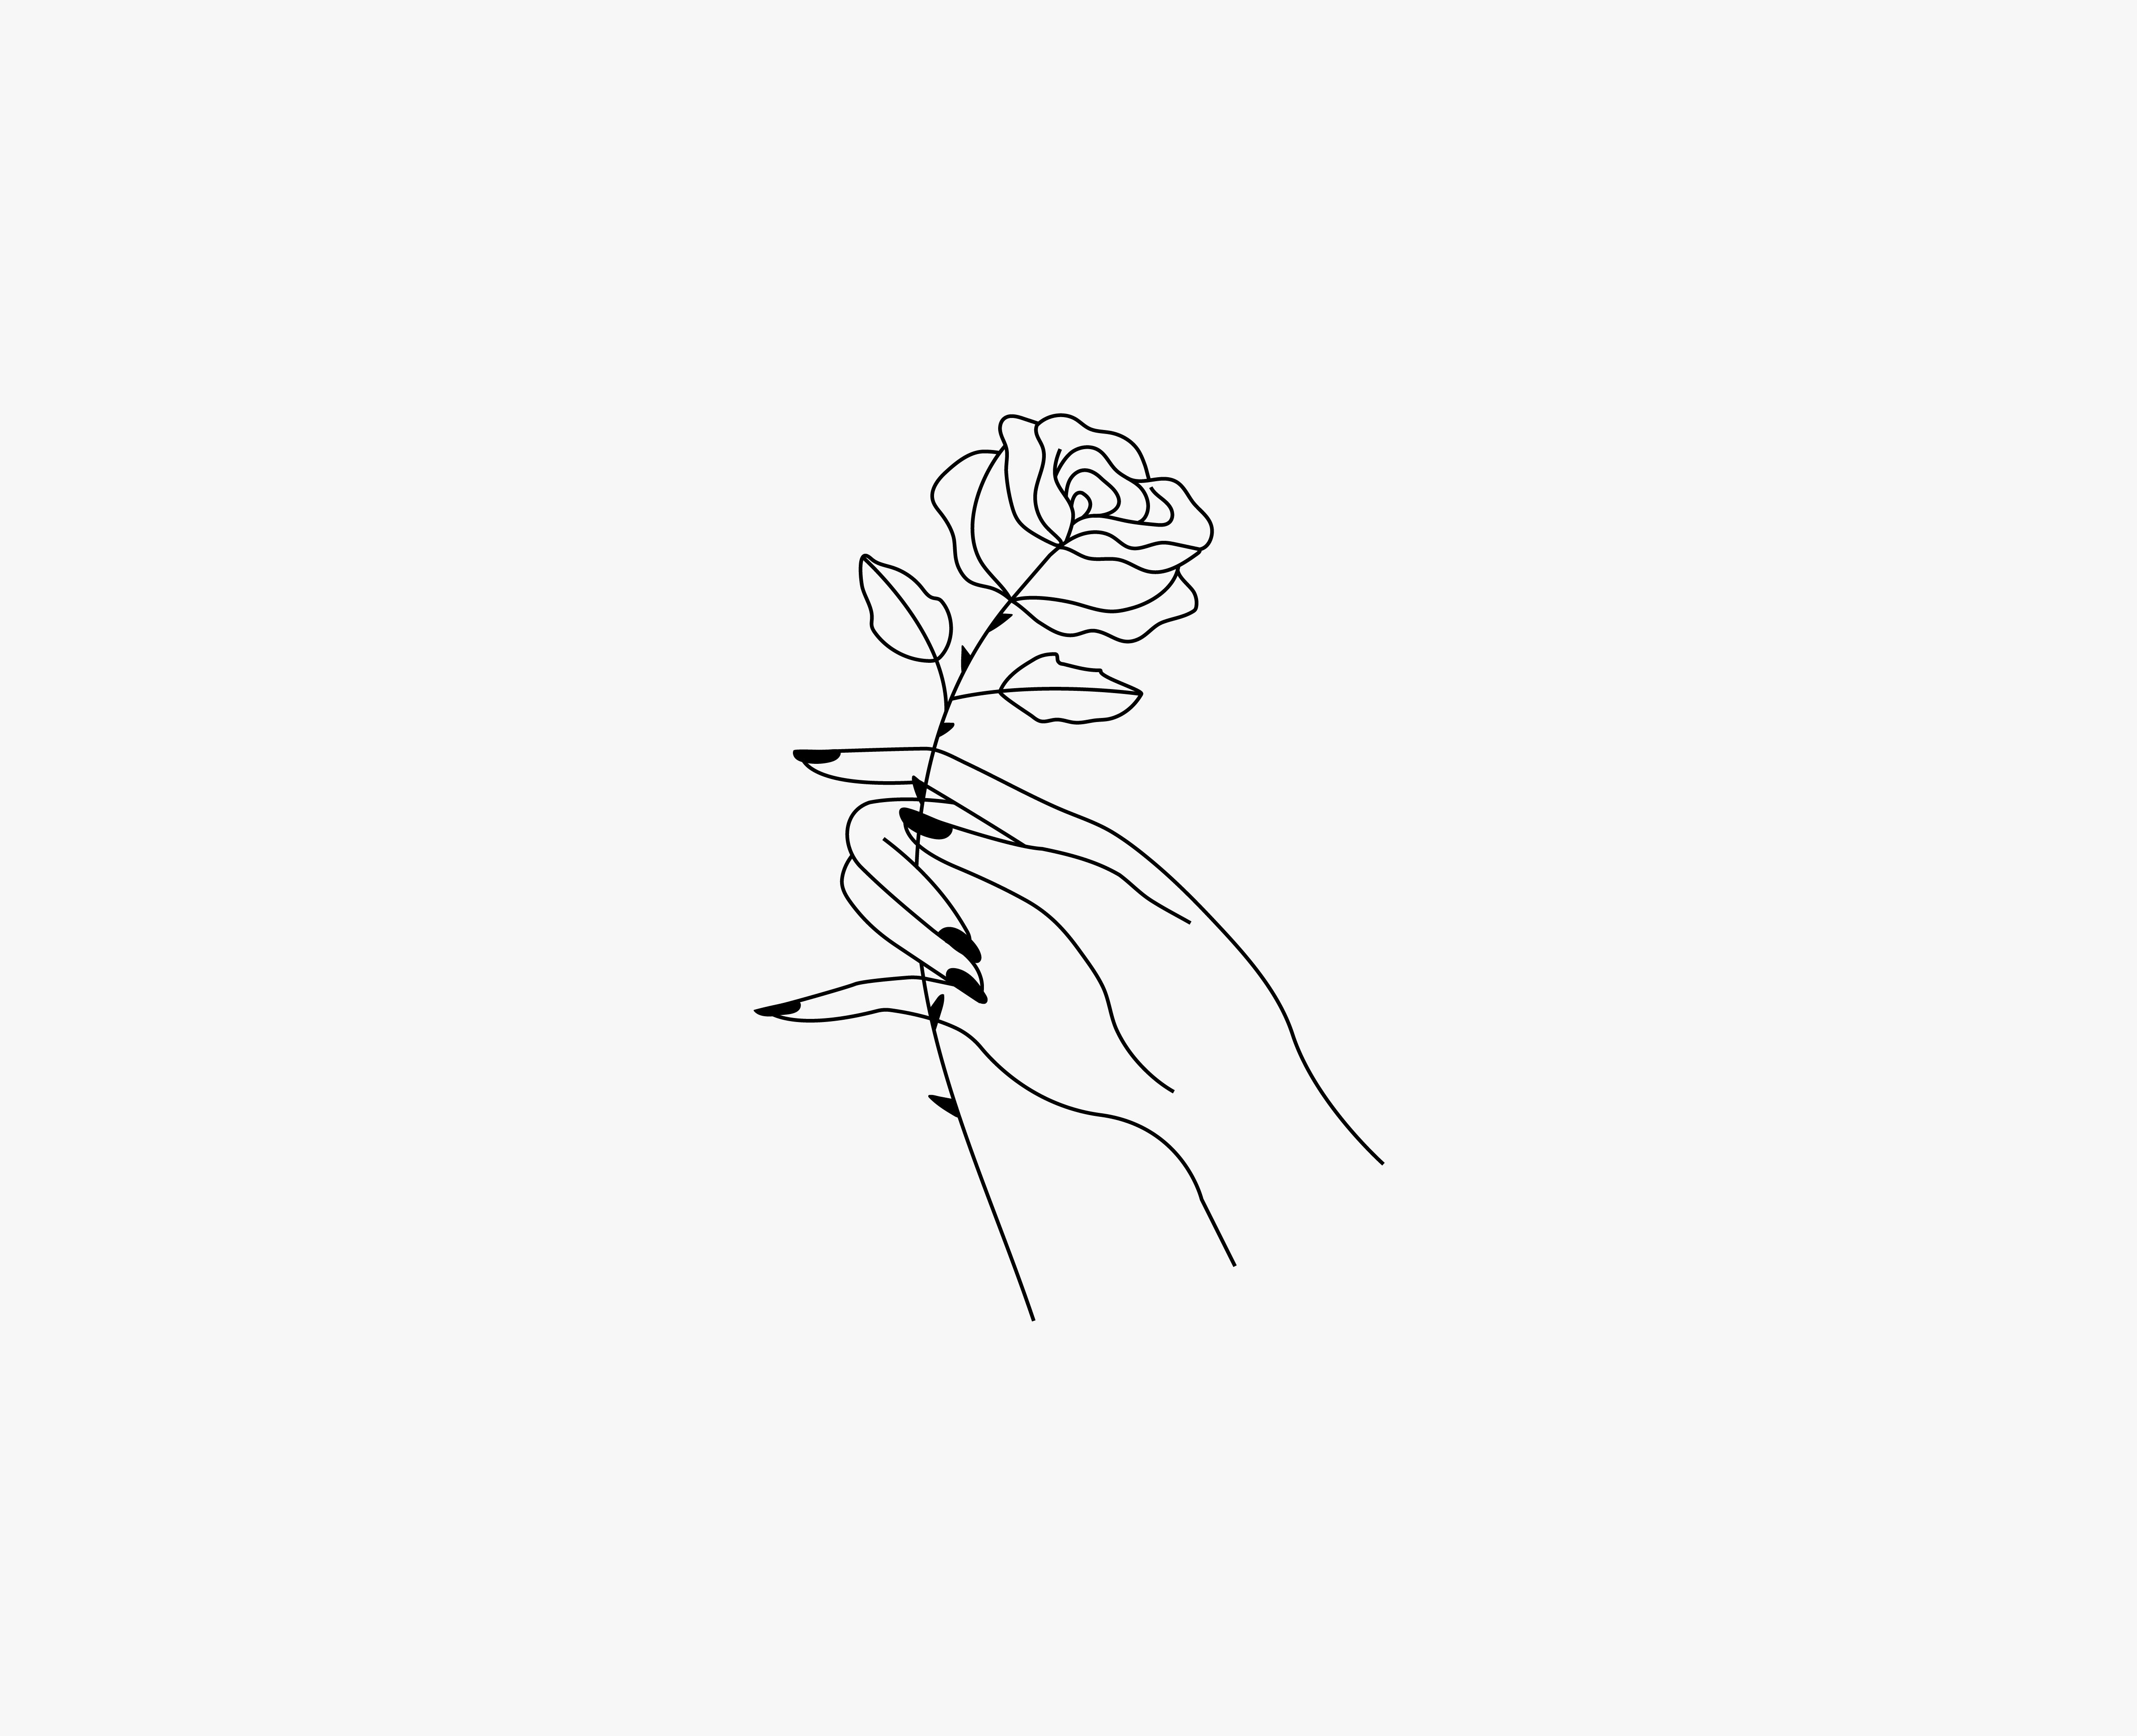 Rose Hand Minimal Illustration Small Tattoo Idea Design Custom Logo Design Simple Branding Watercolor Rose Tattoos How To Draw Hands Minimal Tattoo Design